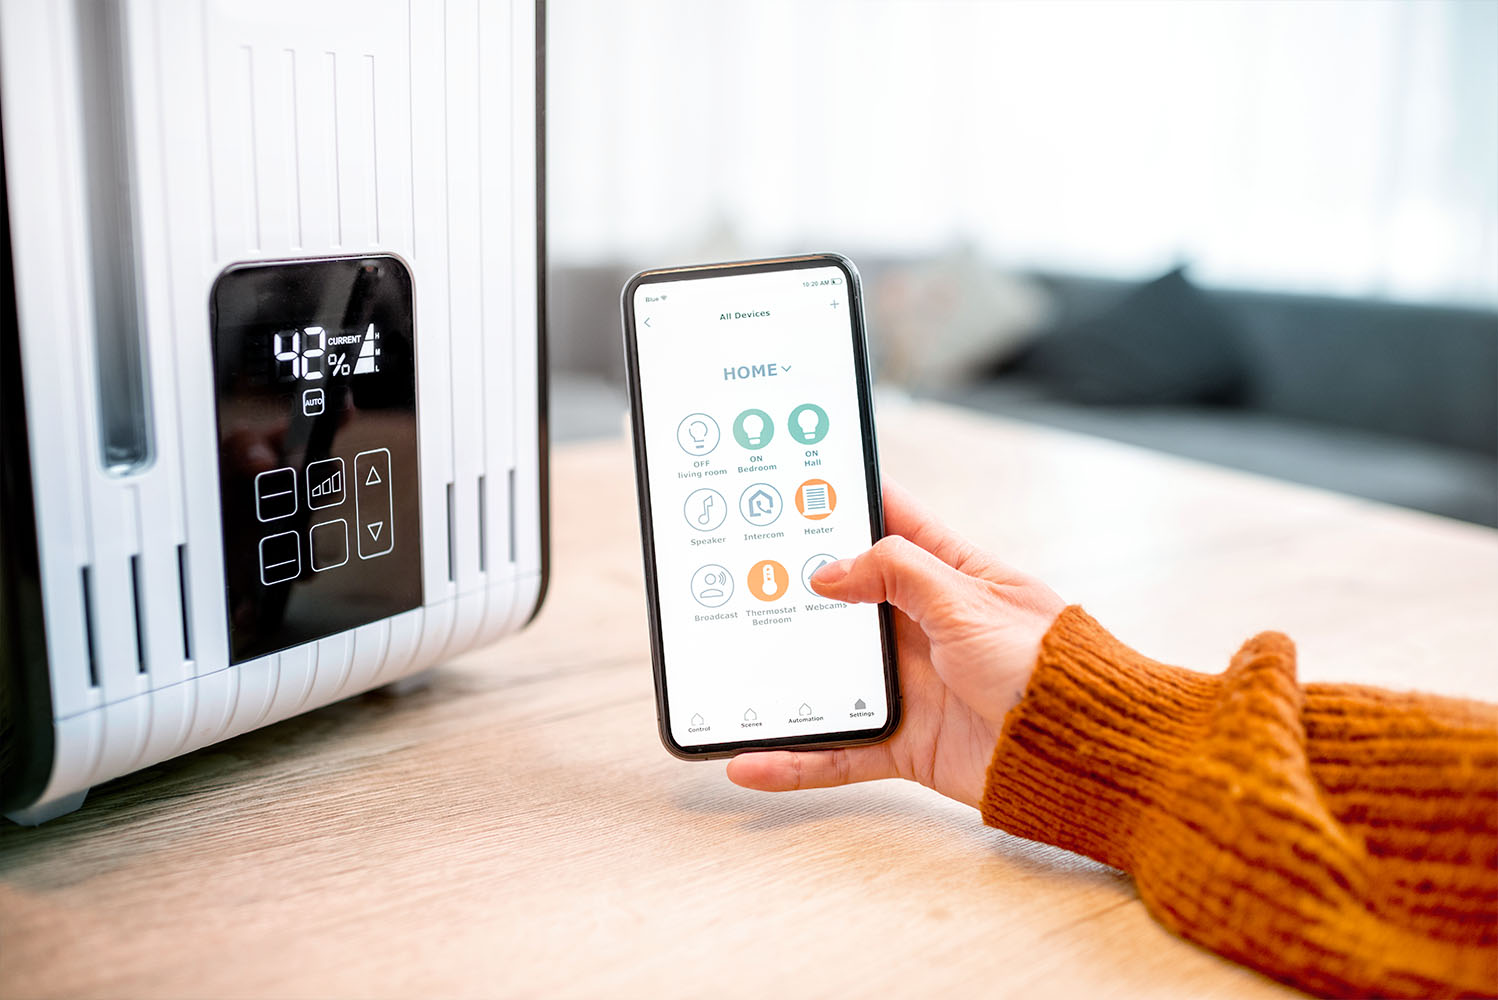 DT_smarthome-thermostat